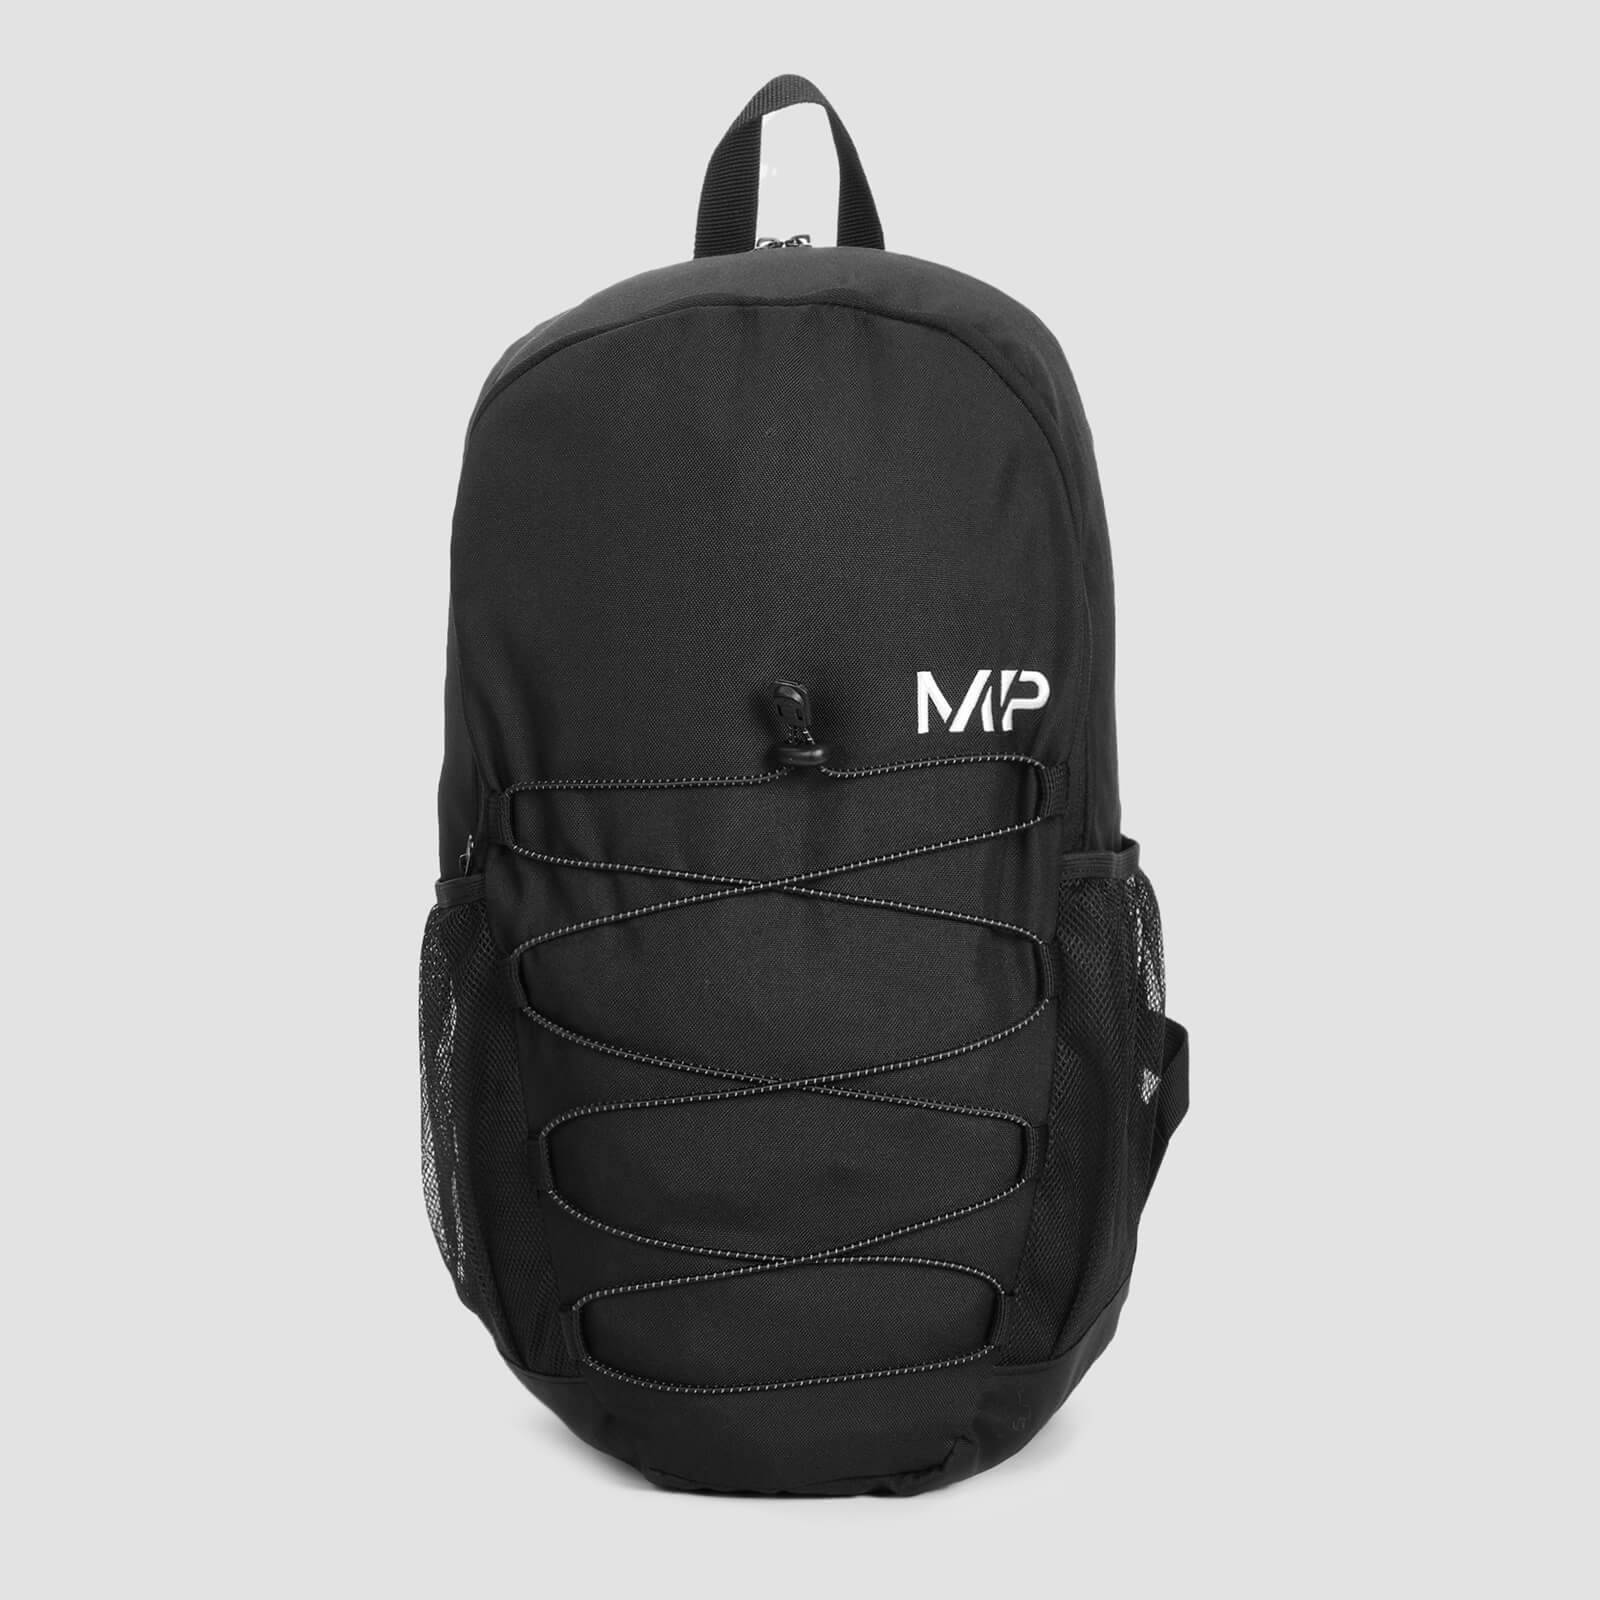 Myprotein MP Technical Backpack - Black